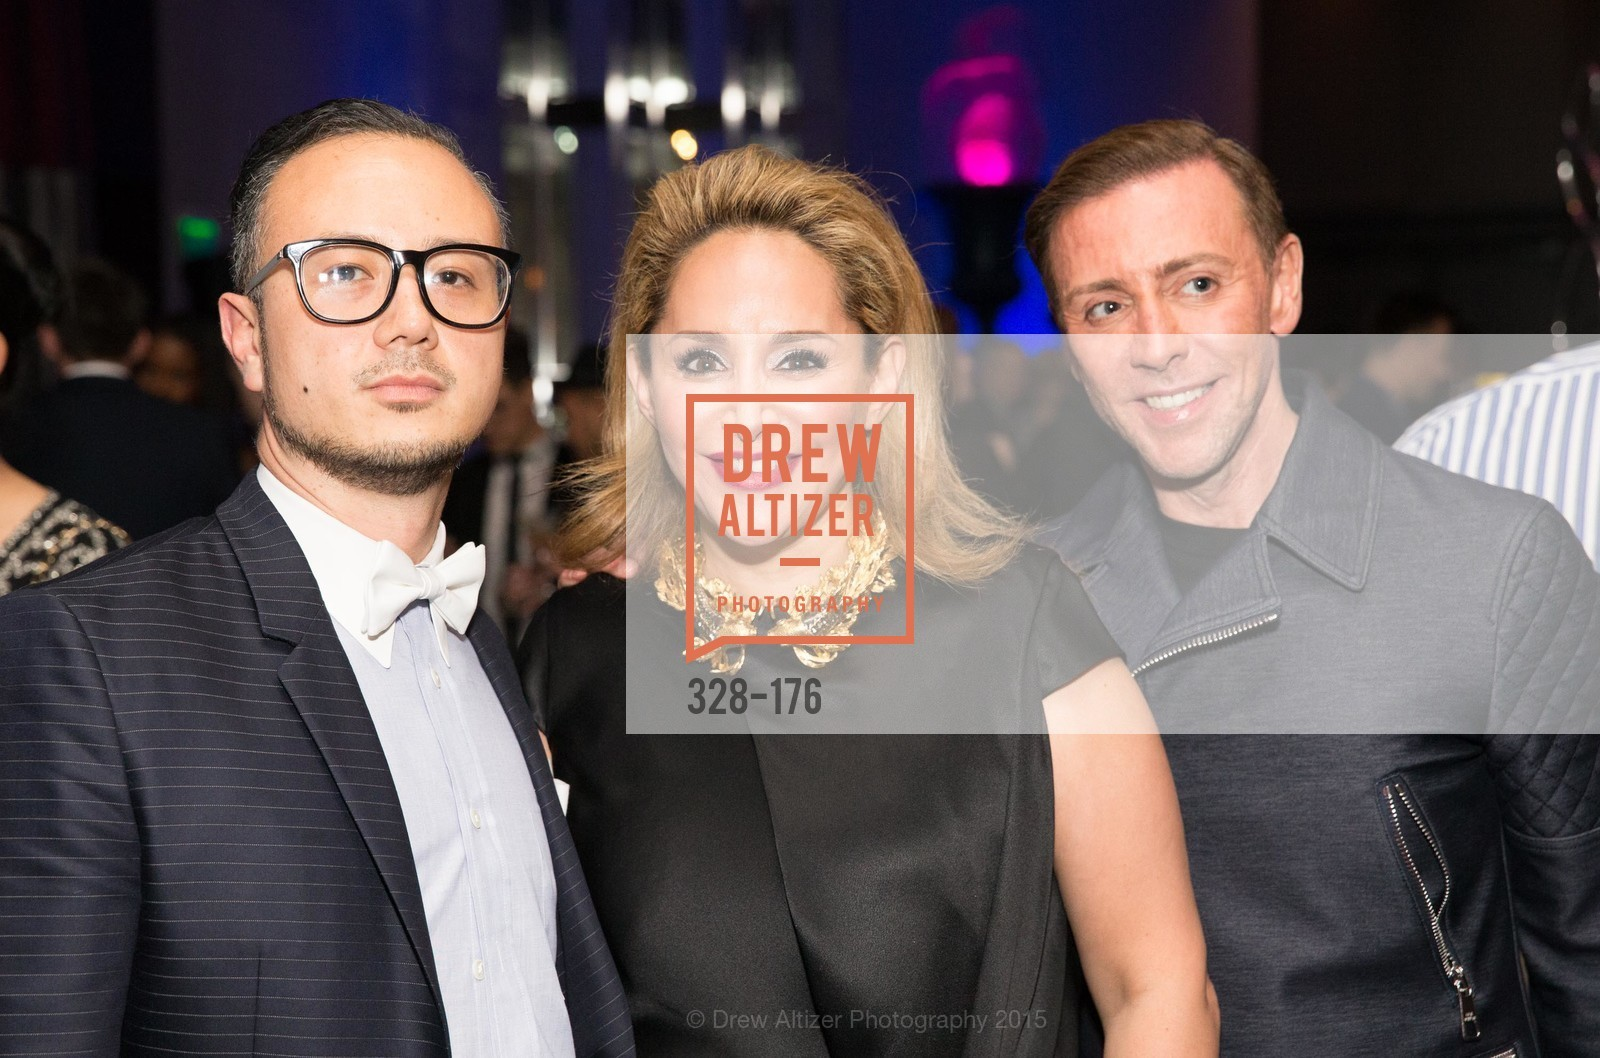 Anthony Koenig, Brenda Zarate, Mark Rhoades, VIP Pride Celebration 2015, St. Regis, June 18th, 2015,Drew Altizer, Drew Altizer Photography, full-service agency, private events, San Francisco photographer, photographer california